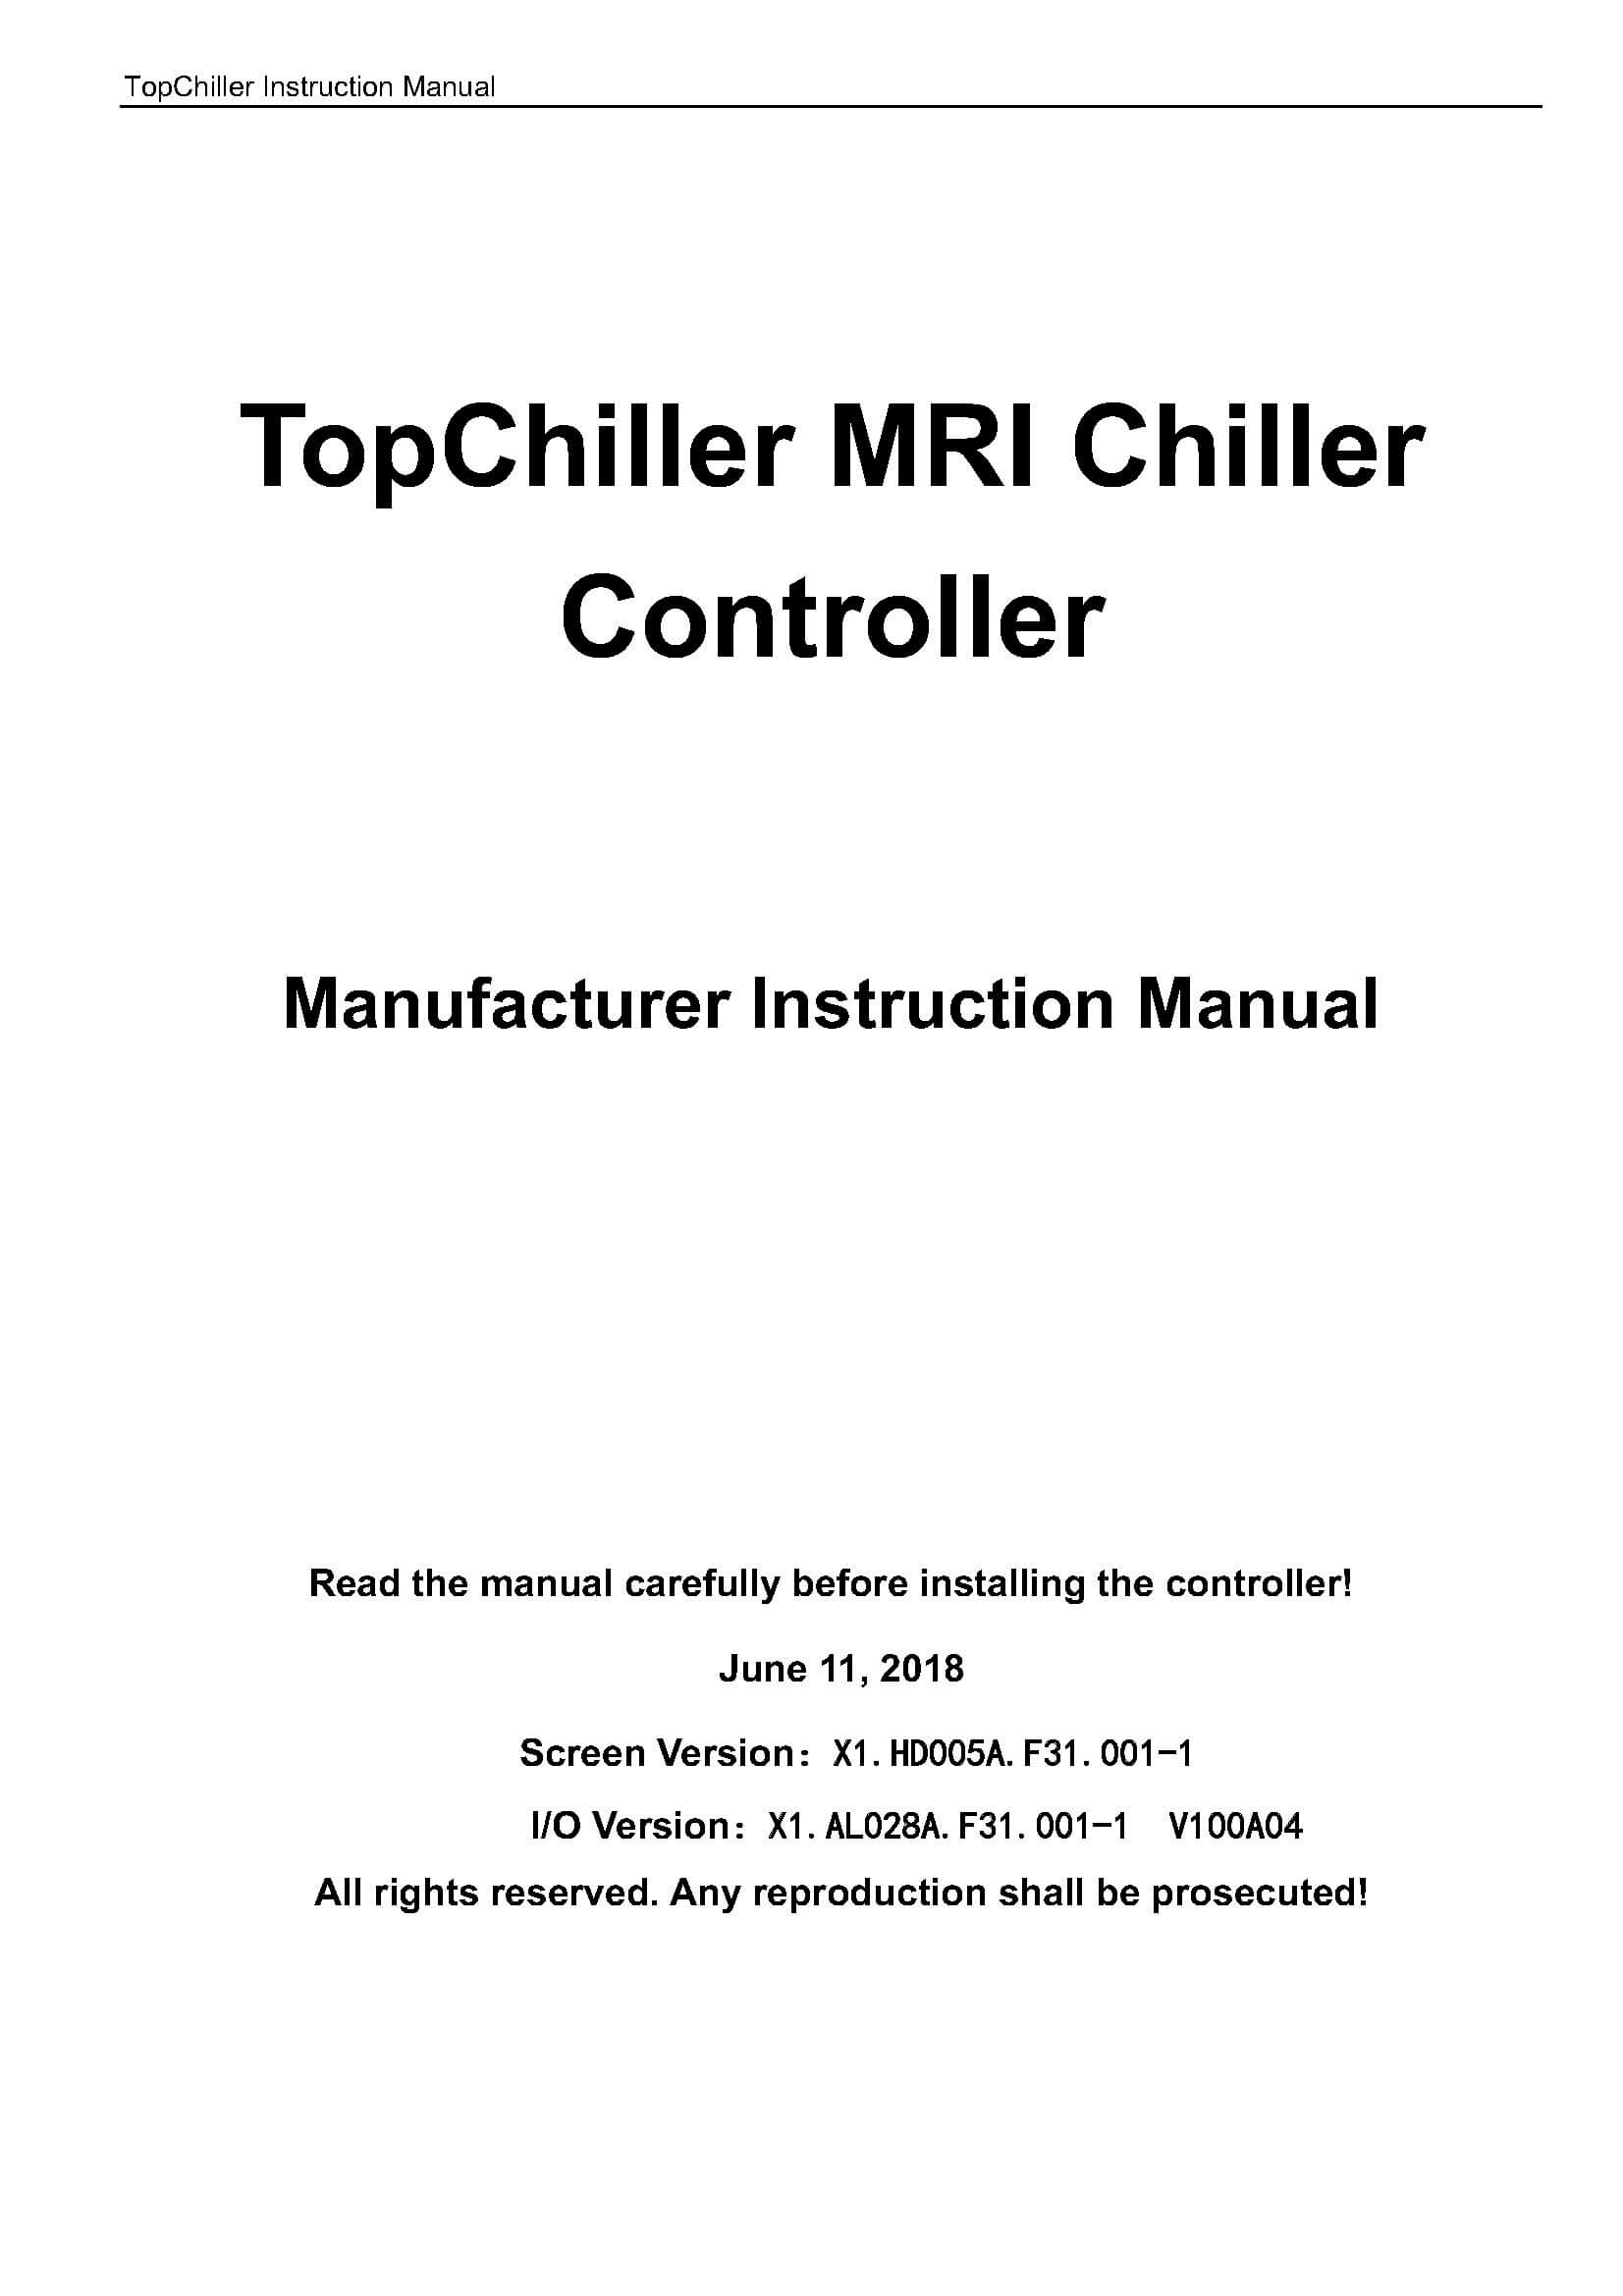 MRI Chiller Operation Manual